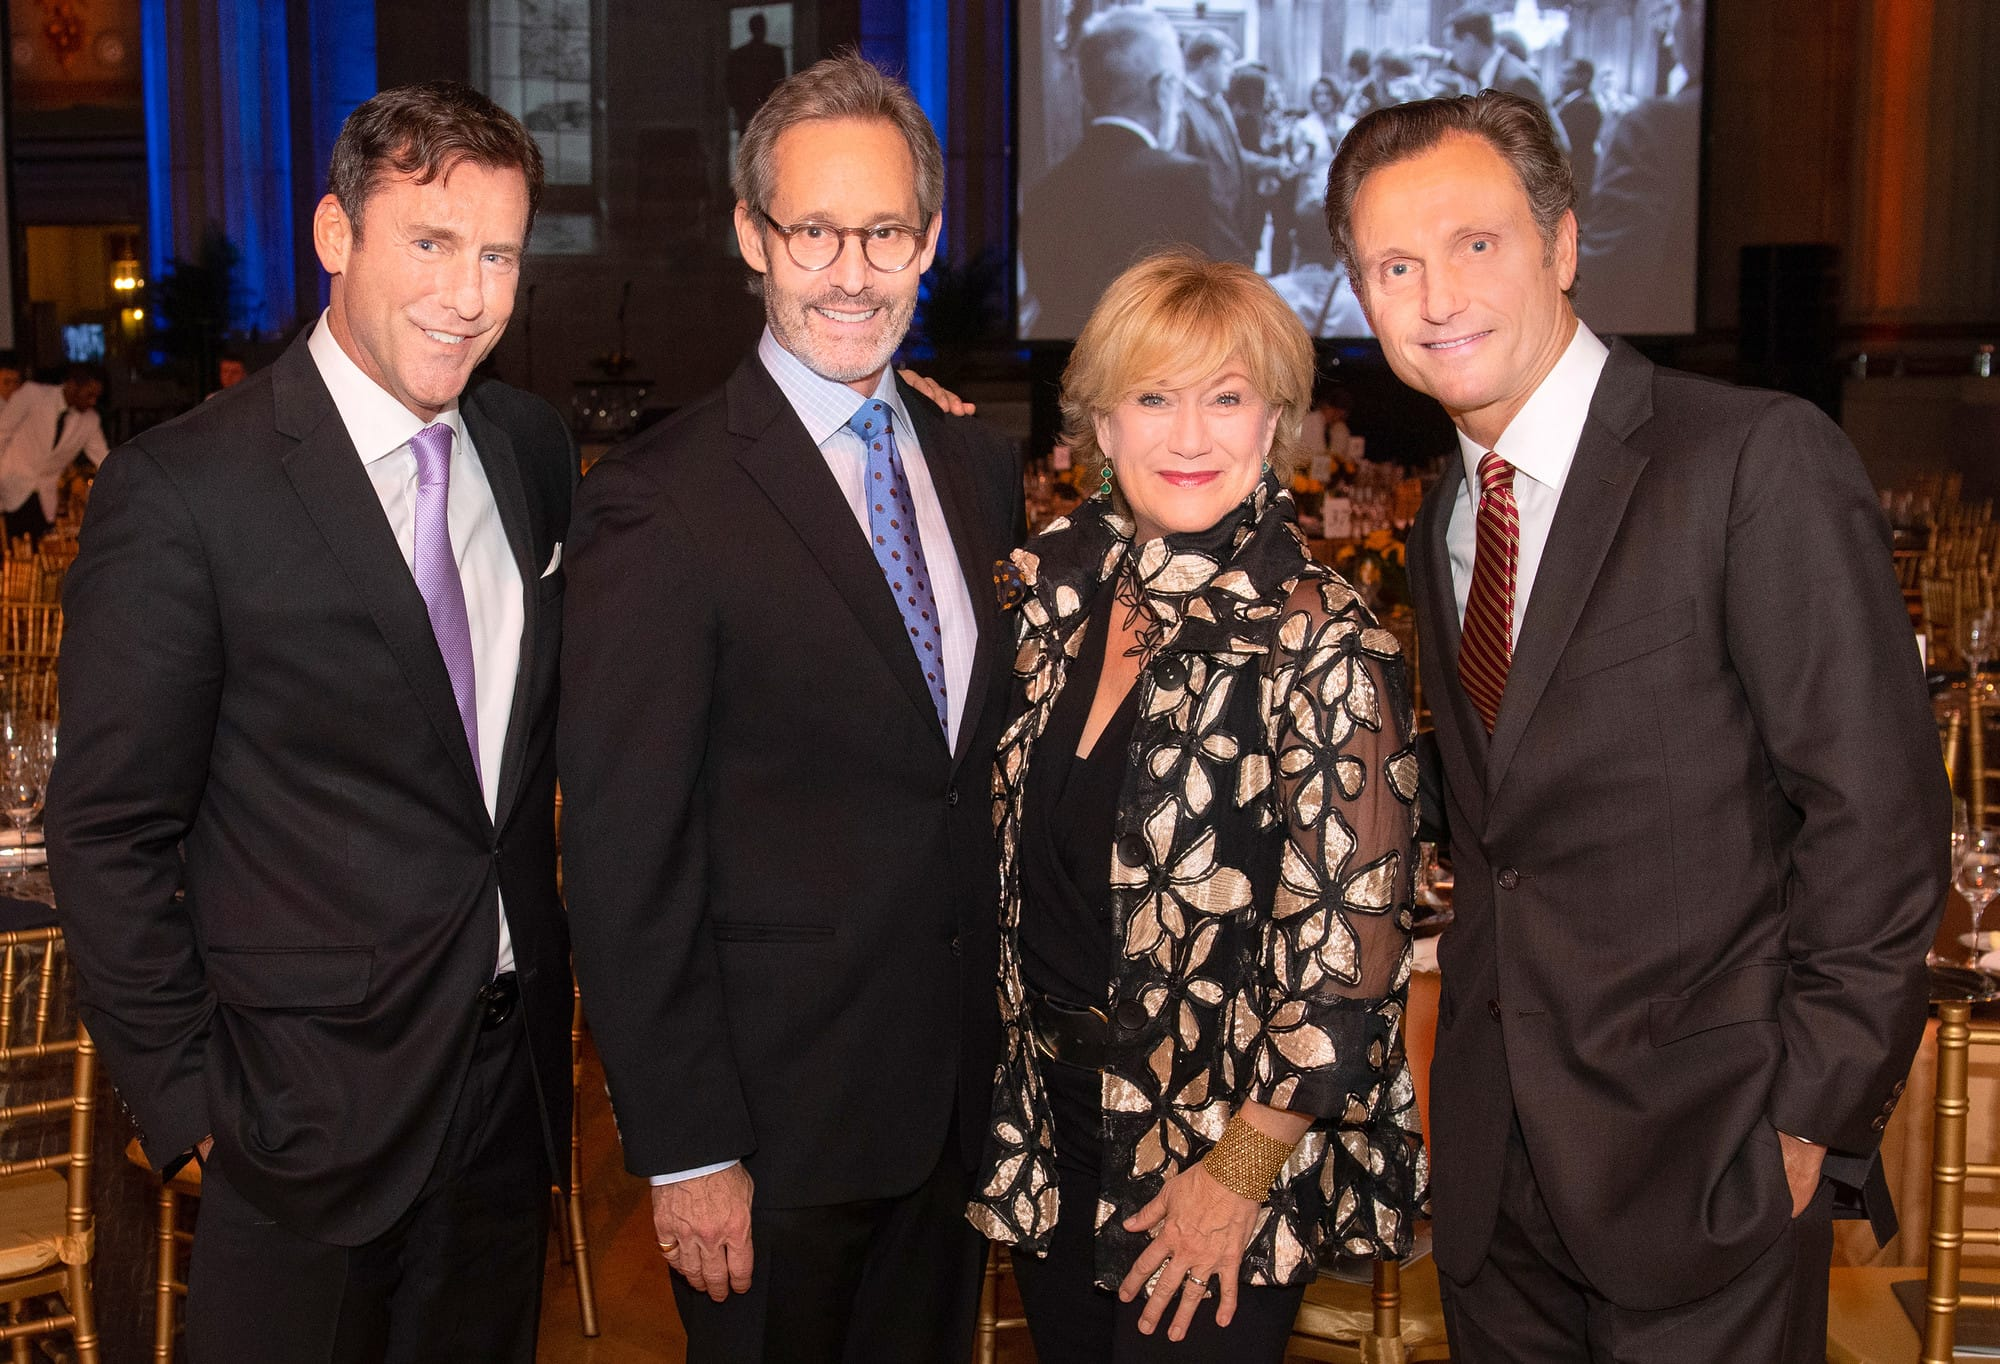 Mark K. Updegrove, president and CEO of the LBJ Foundation, Michel Gill, Jayne Atkinson, and Tony Goldwyn. LBJ Foundation photo by Daniel Swartz, 2019.